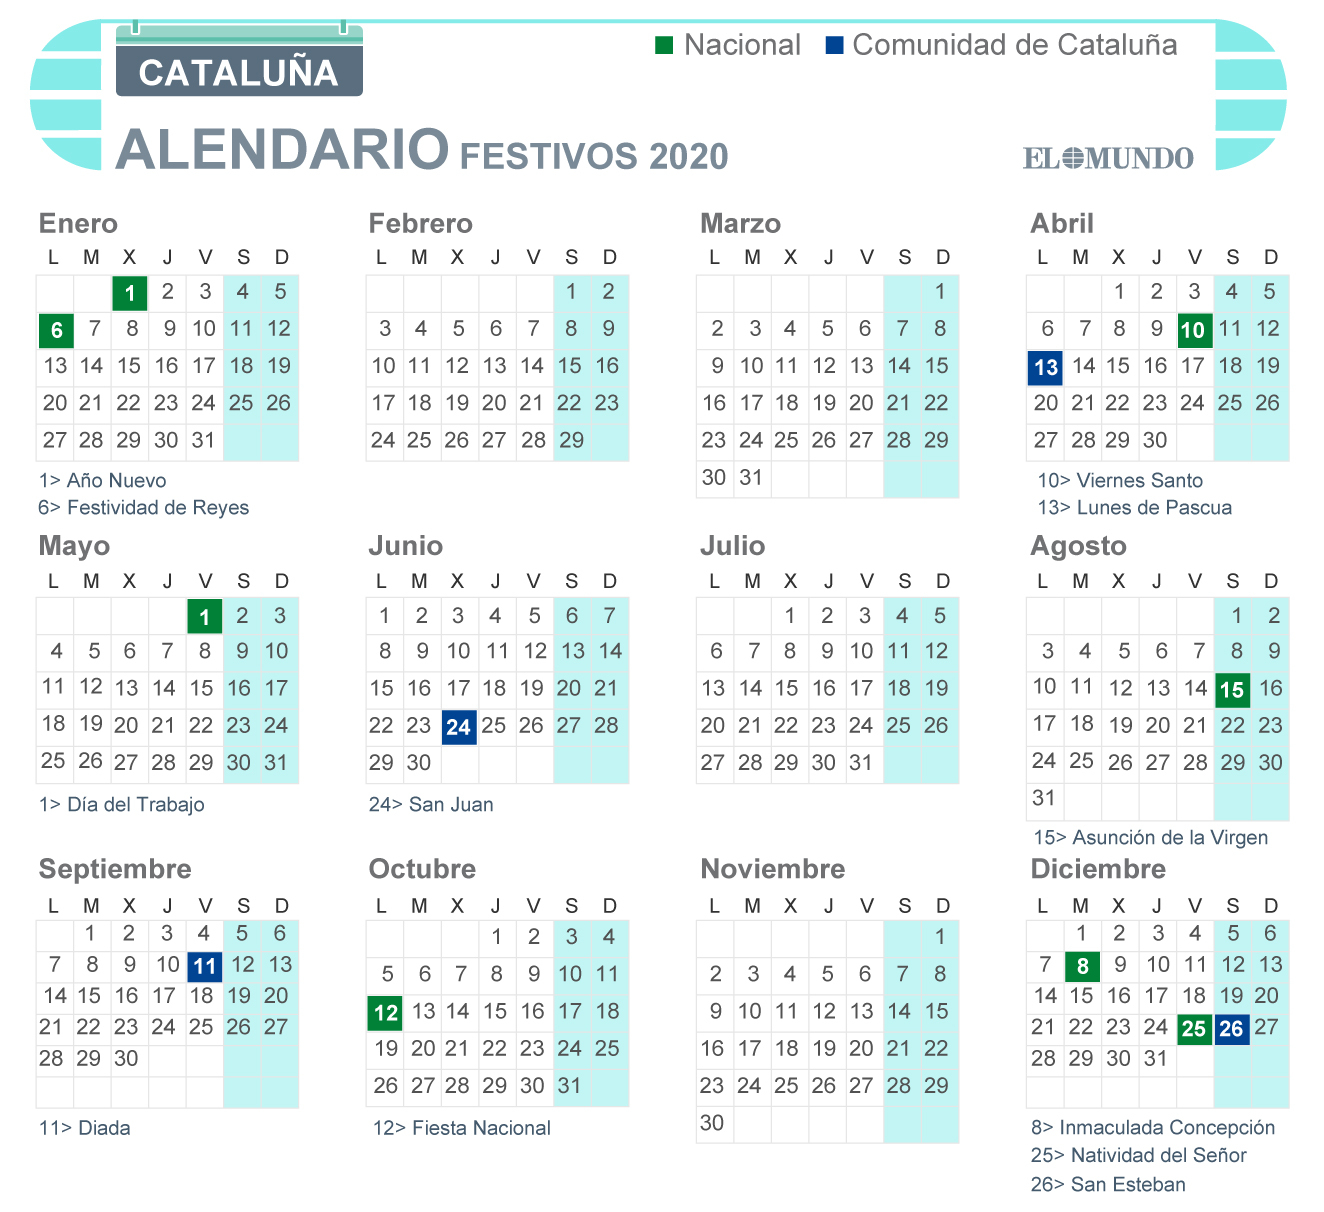 Calendario laboral de Cataluña 2020